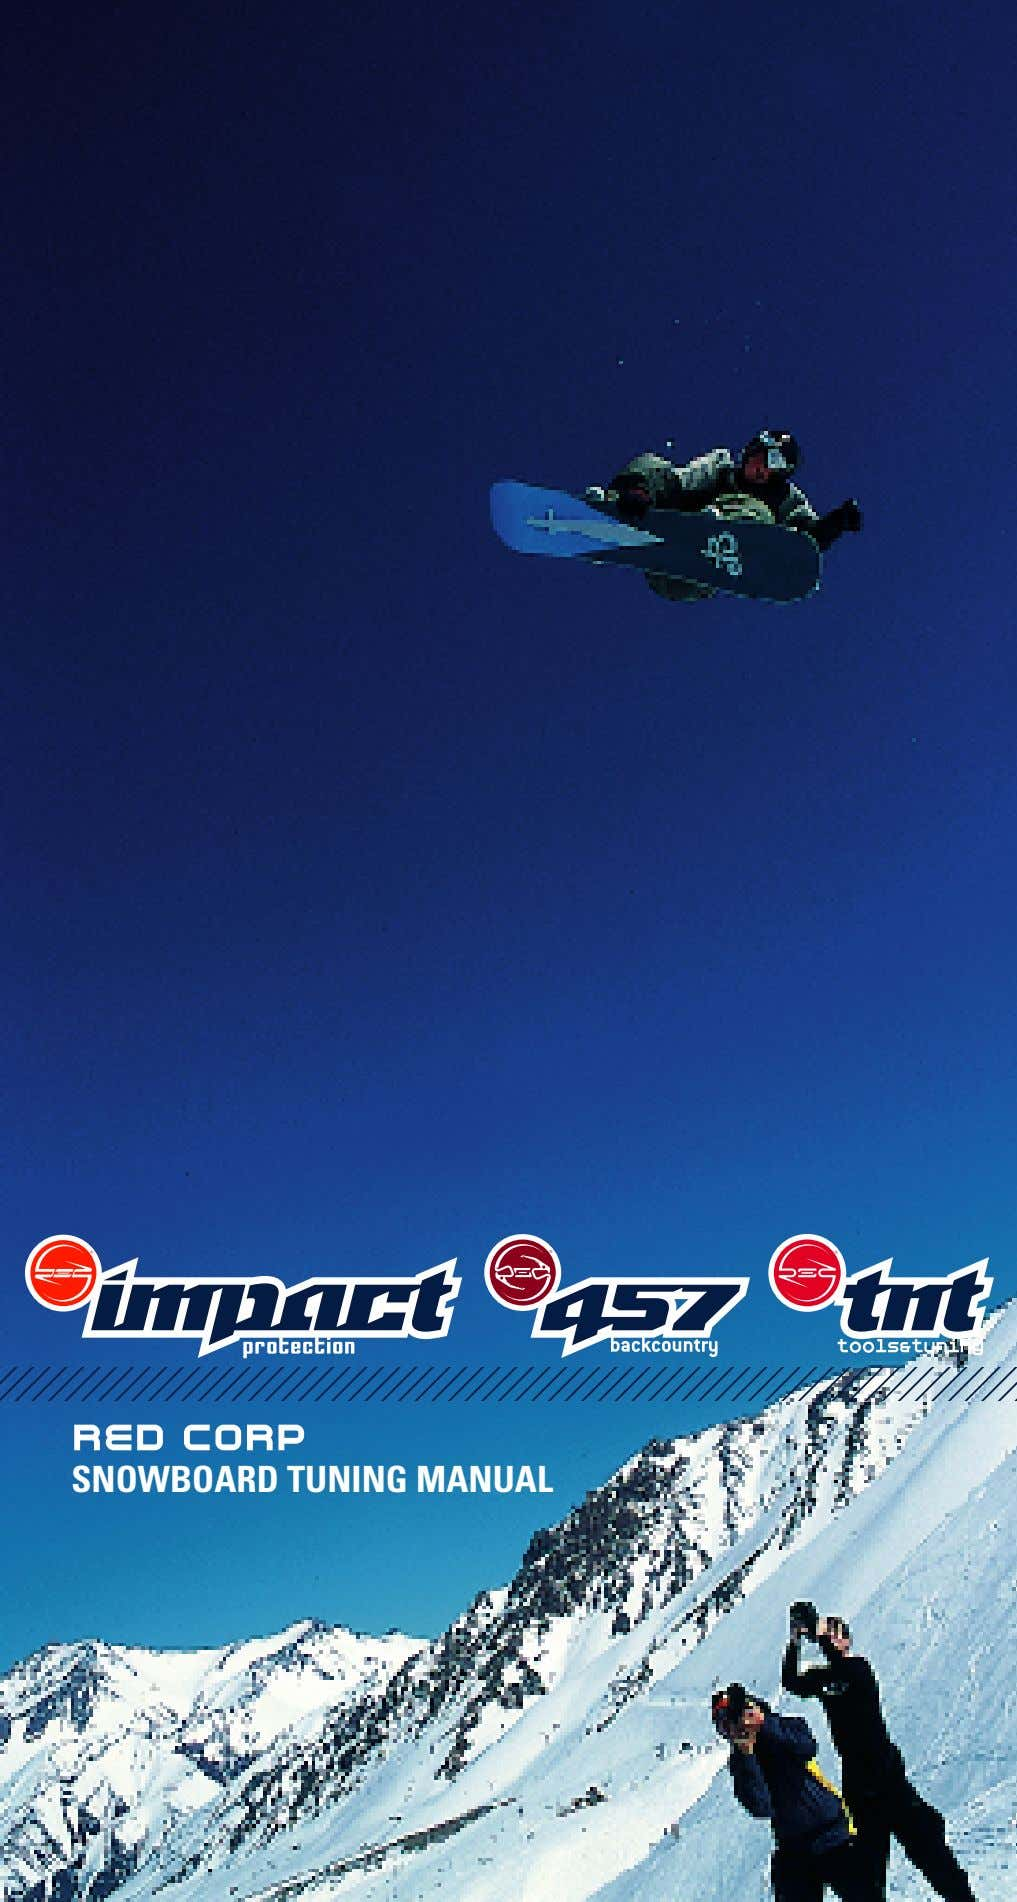 RED CORP SNOWBOARD TUNING MANUAL